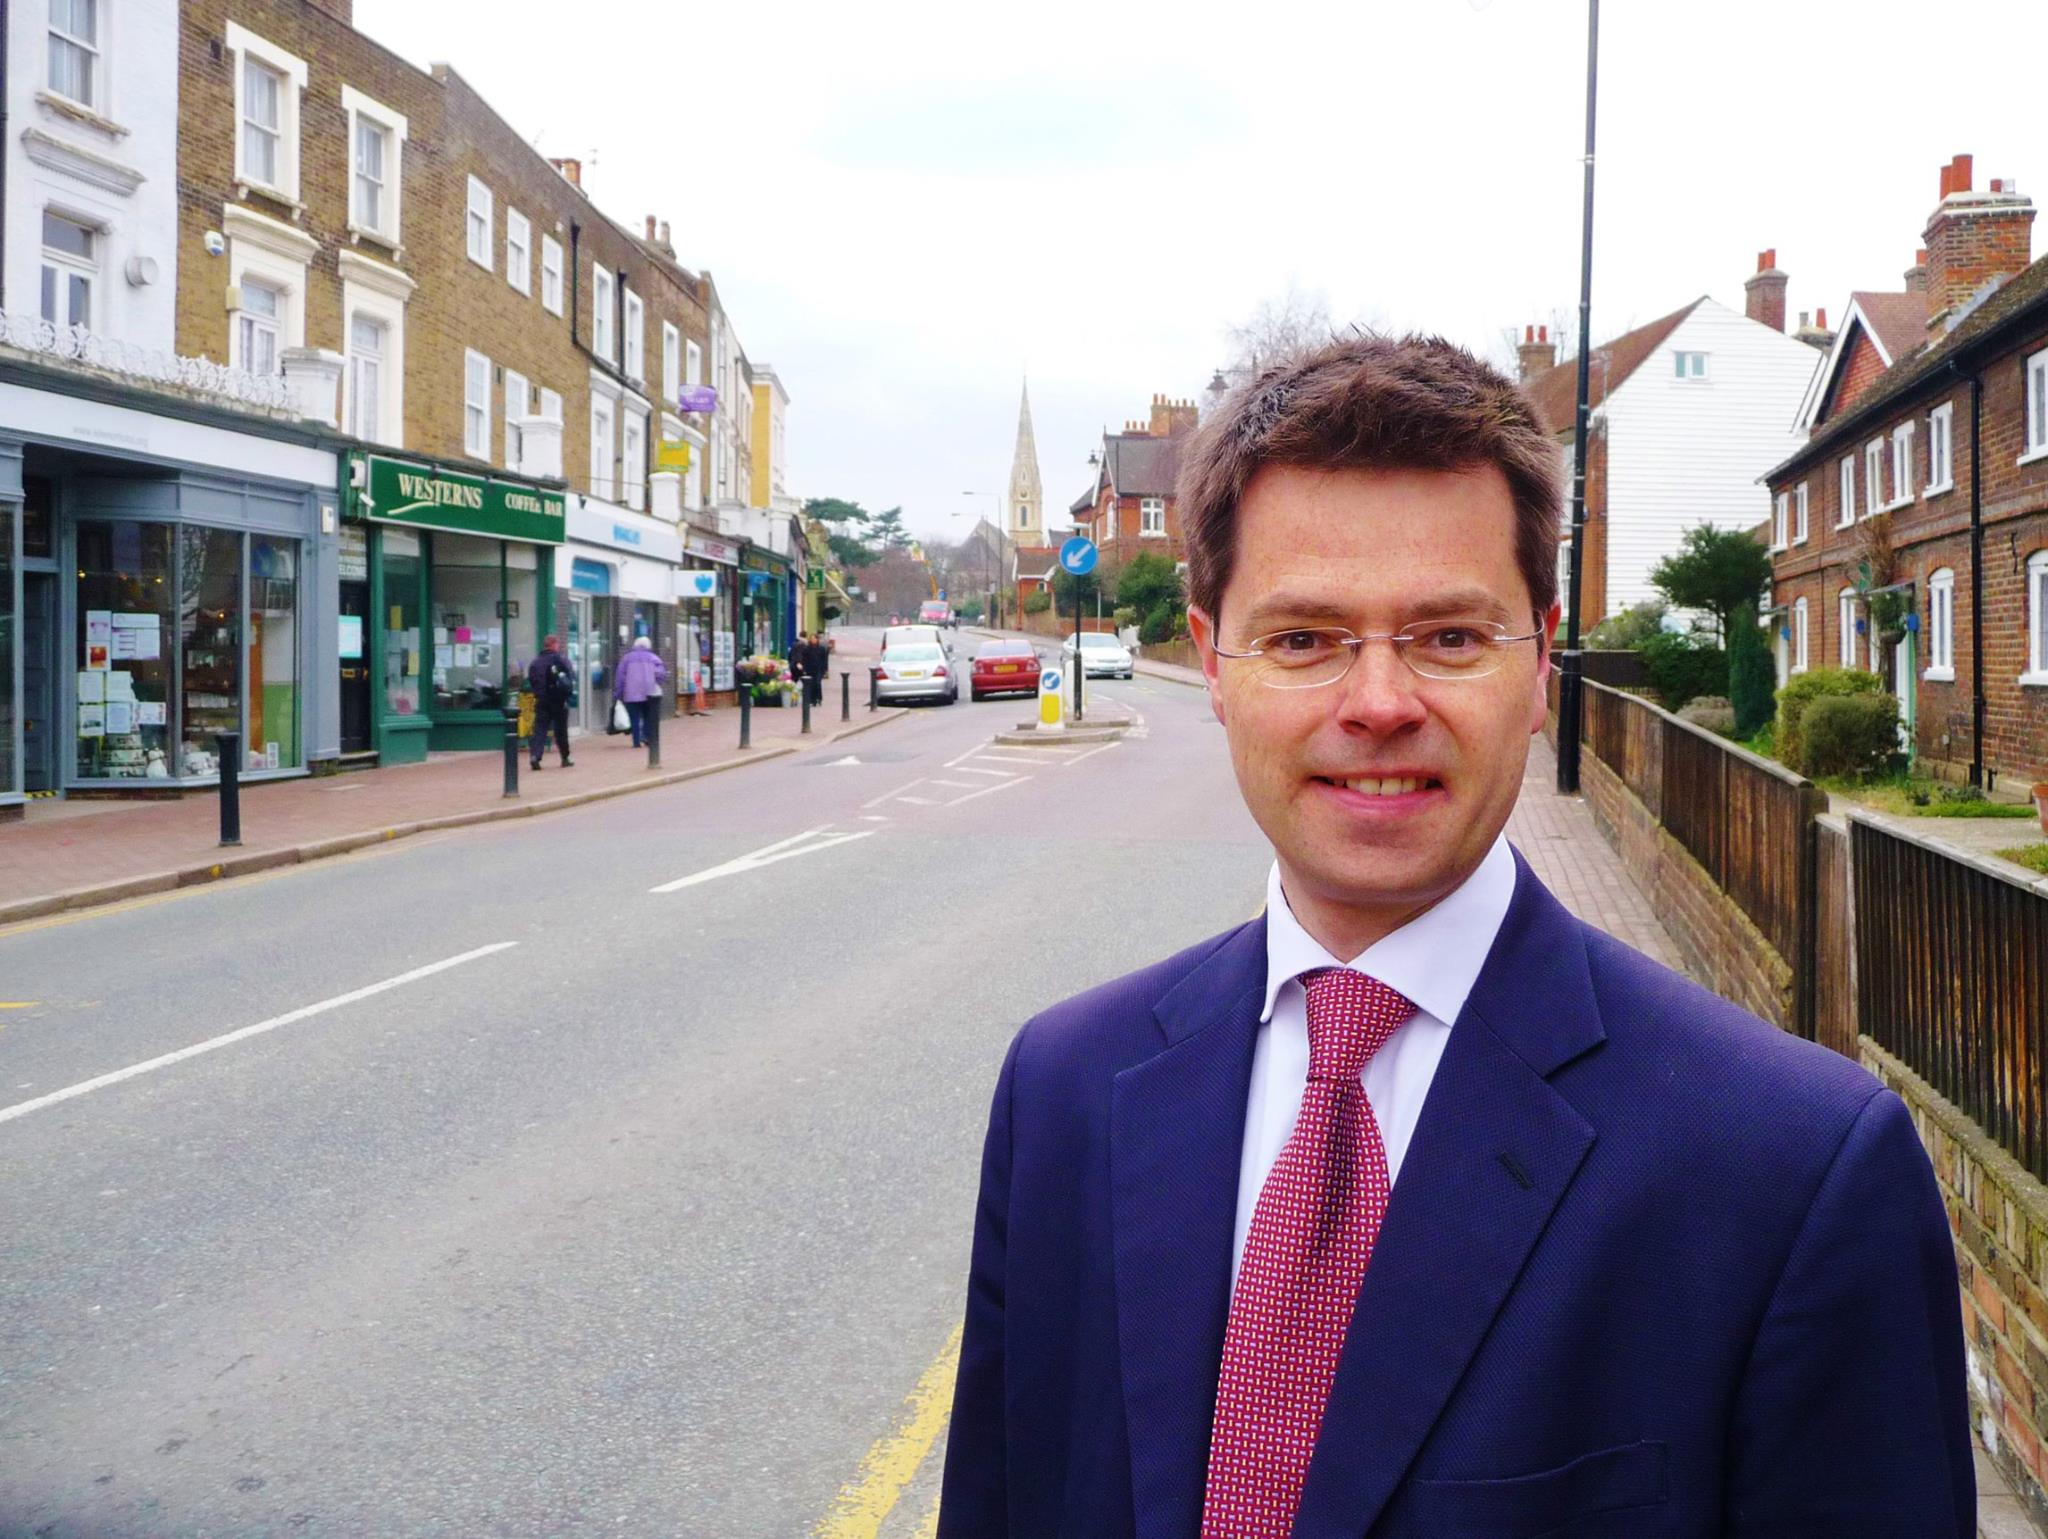 James Brokenshire, a Tory MP from greater London, is the new secretary of state for Northern Ireland. (Facebook)